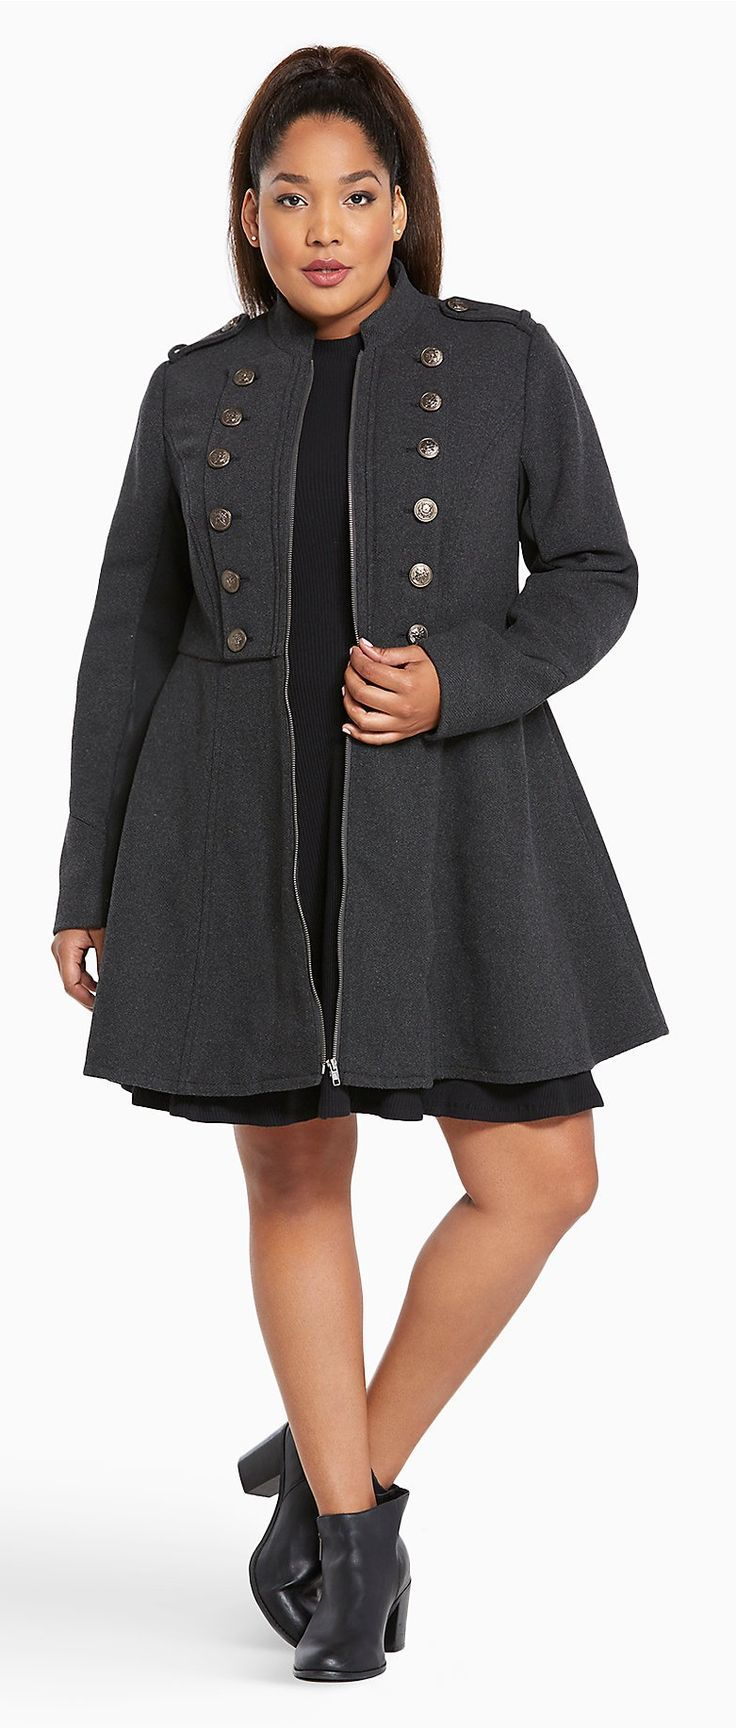 Plus Size Long Coats Great for warmth as well as comfort and style, our long coats are a tour de fashion force. From on-trend capelets and military-style coat dresses to suede and faux suede knee-length, find the jacket that fits your style personality.